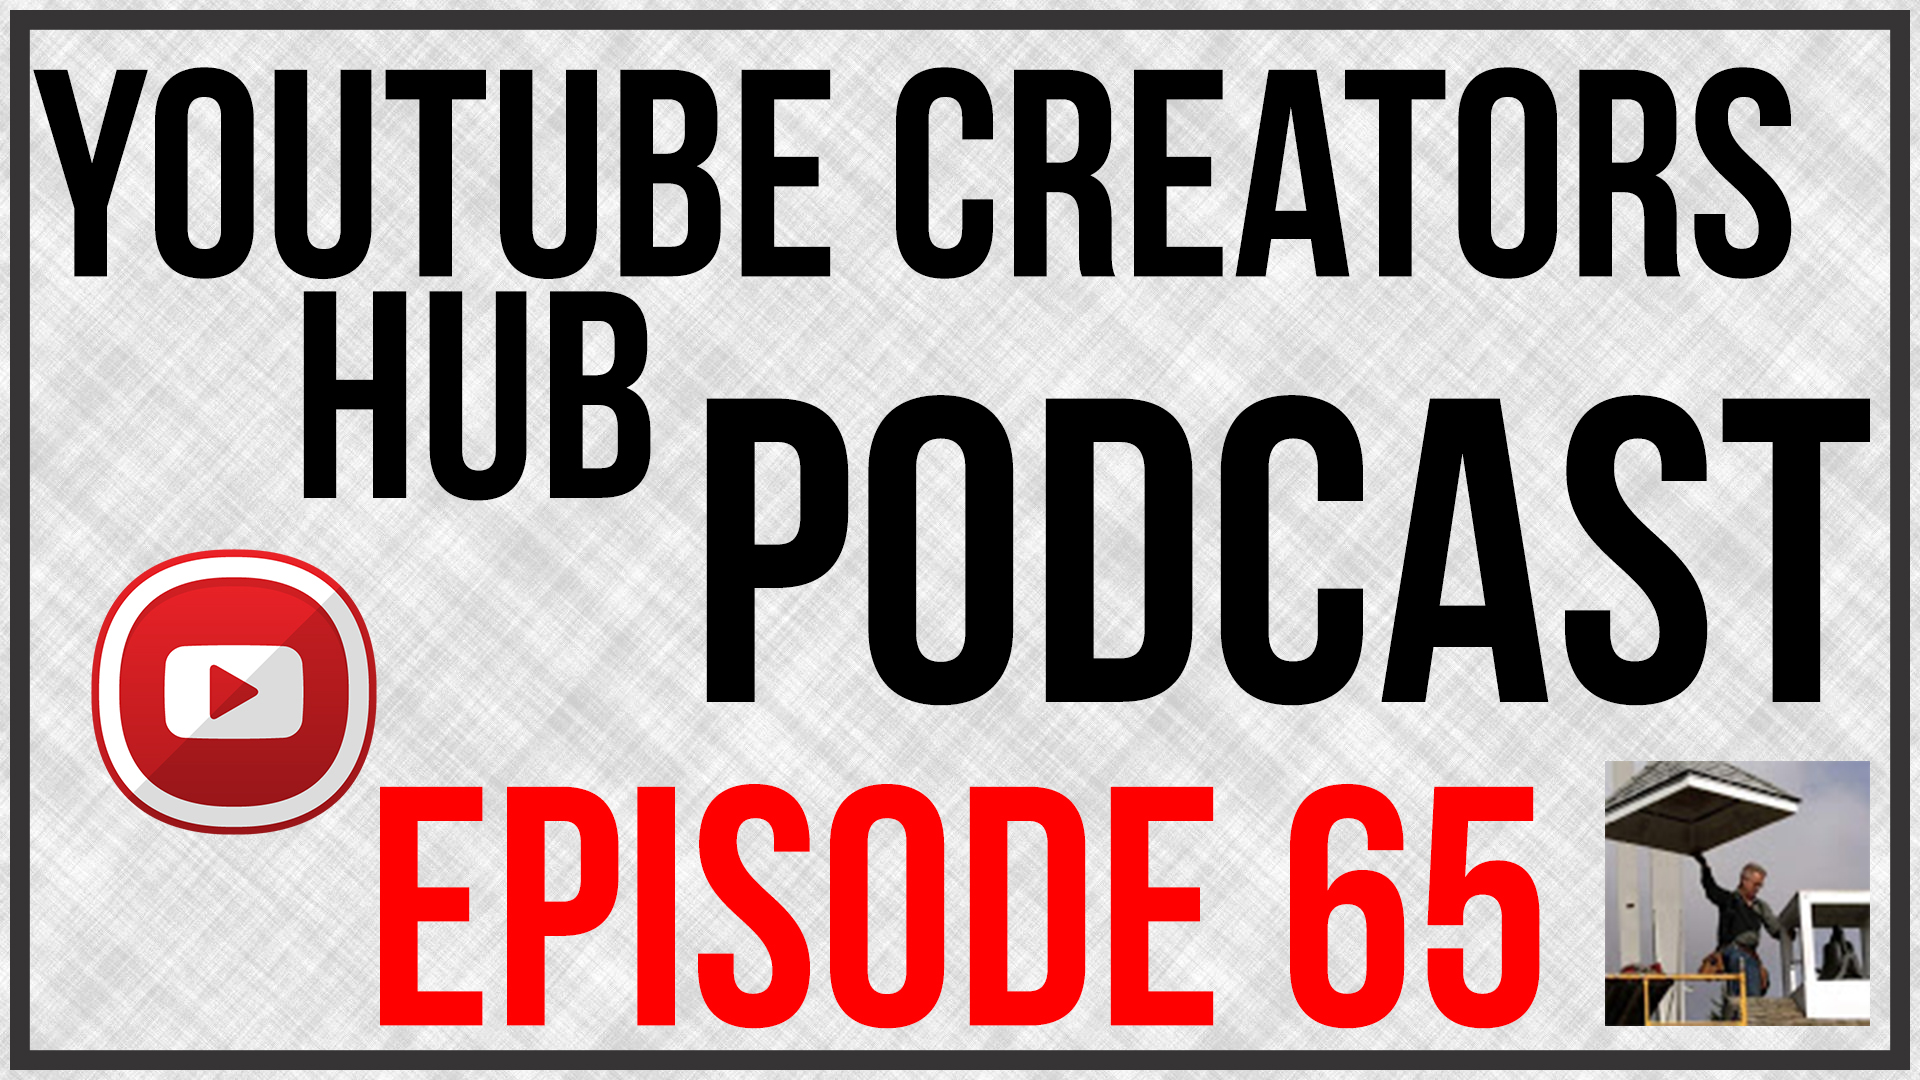 YouTube Creators Hub Podcast Episode 65